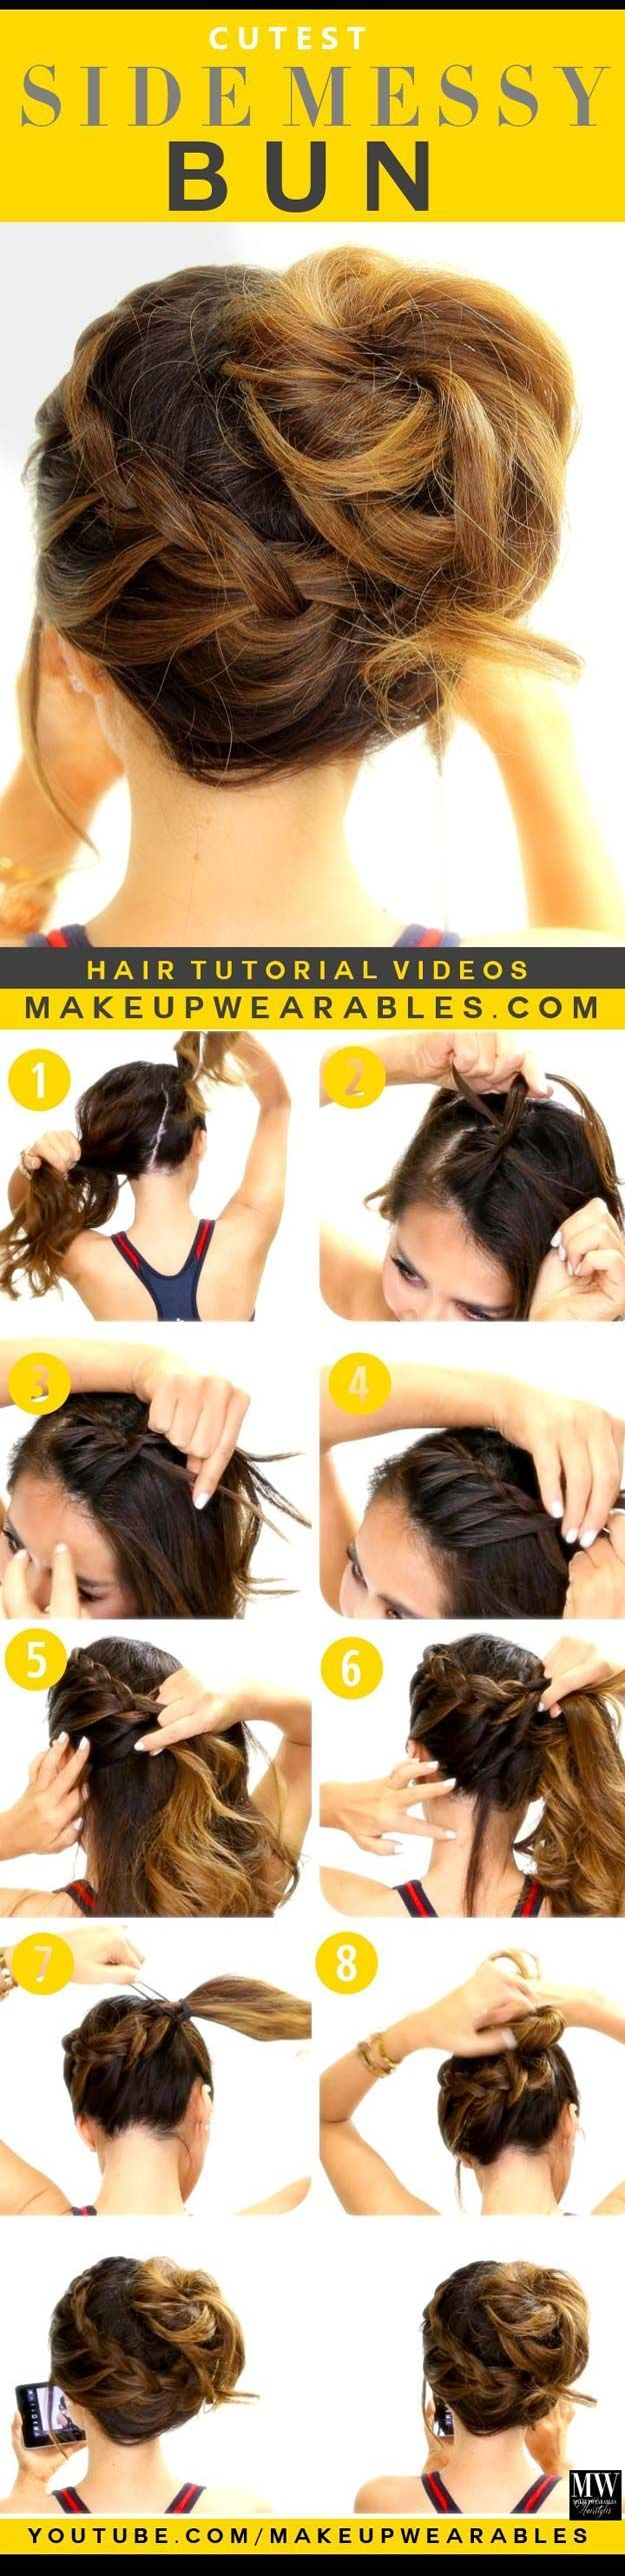 Best Hair Braiding Tutorials - Siden Messy Bun - Easy Step by Step Tutorials for Braids - How To Braid Fishtail, French Braids, Flower Crown, Side Braids, Cornrows, Updos - Cool Braided Hairstyles for Girls, Teens and Women - School, Day and Evening, Boho, Casual and Formal Looks http://diyprojectsforteens.com/hair-braiding-tutorials